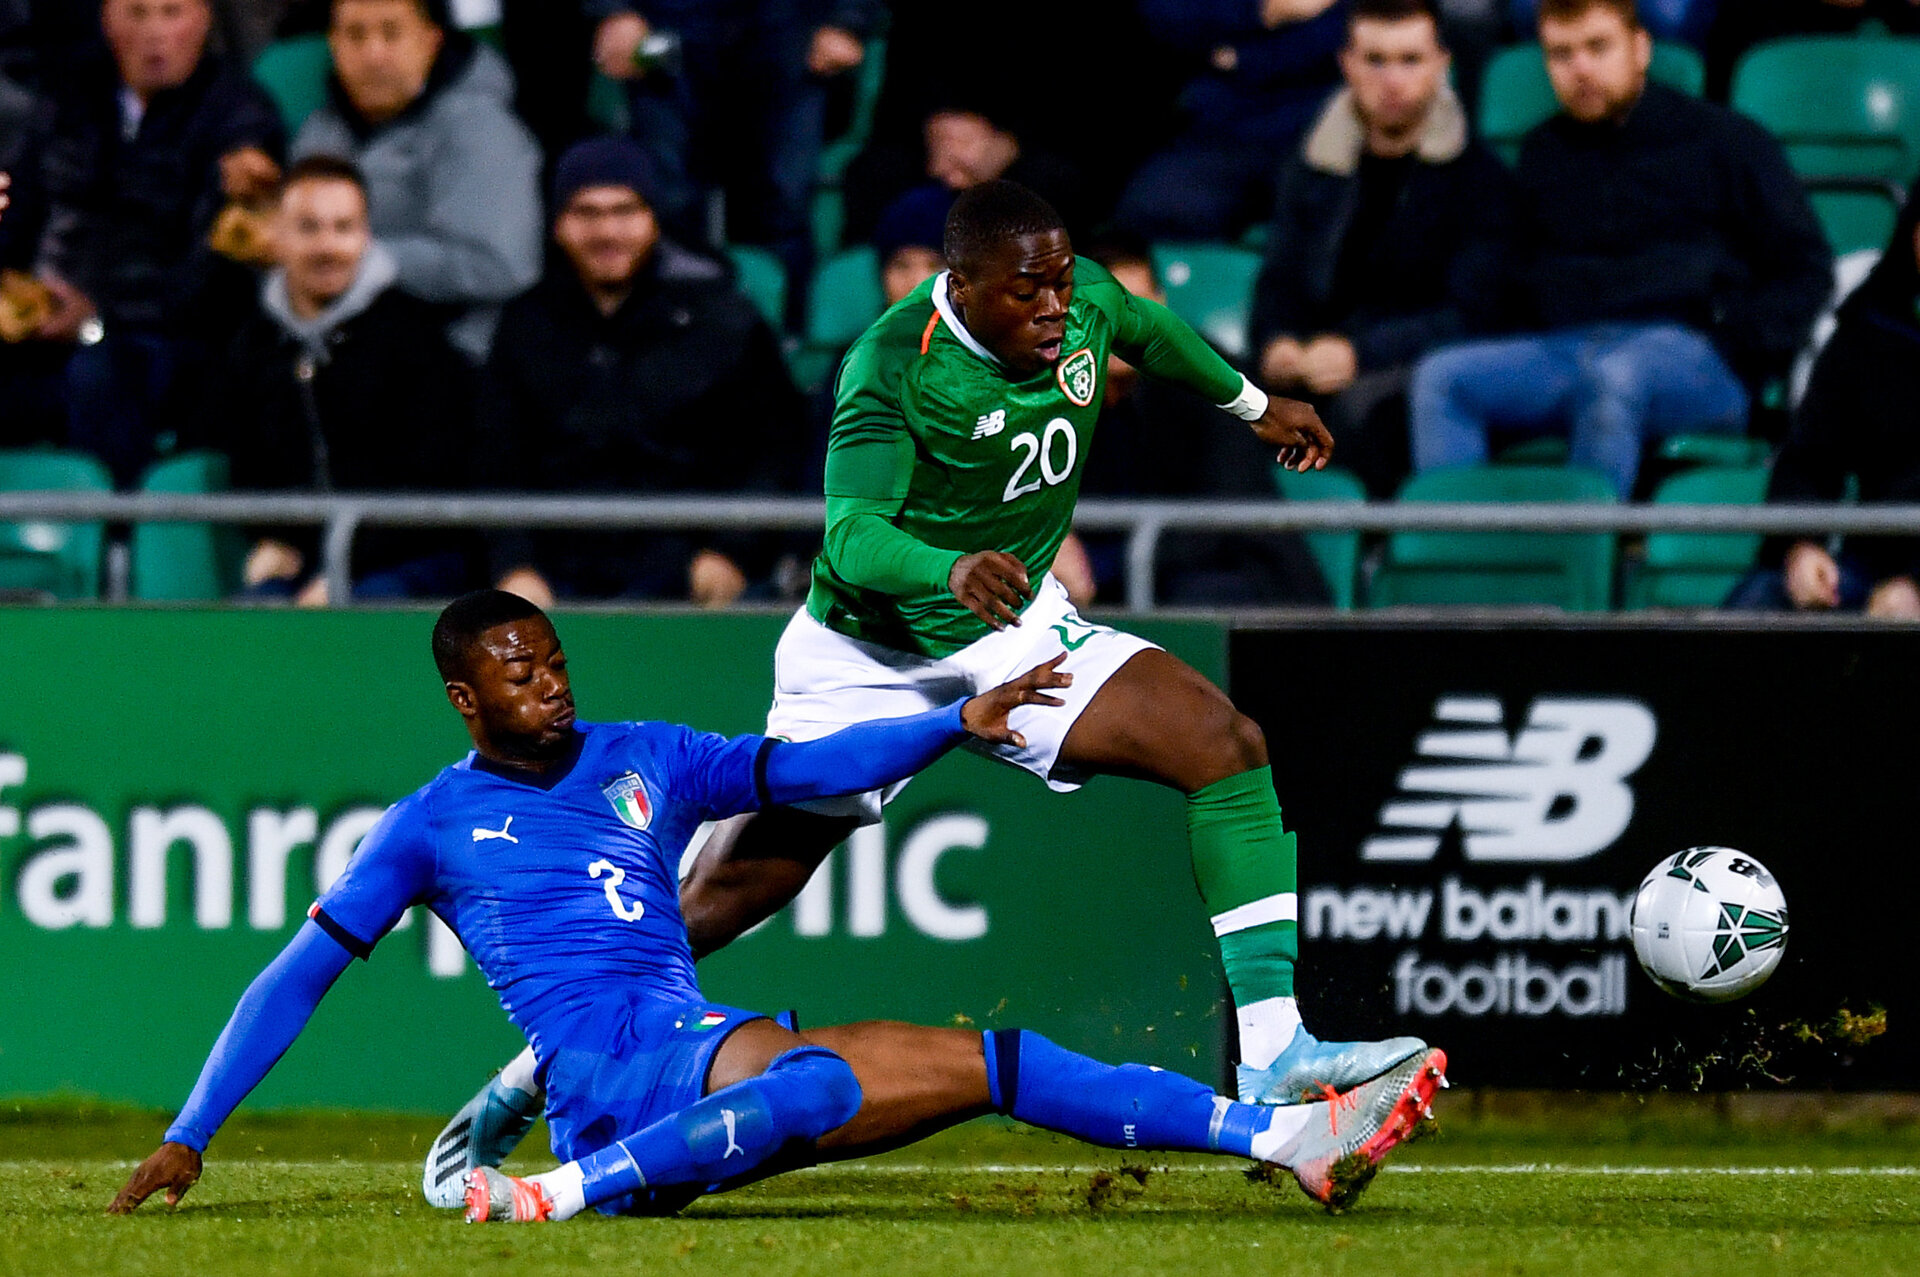 Dublin , Ireland - 10 October 2019; Michael Obafemi of Republic of Ireland is tackled by Claud Adjapong of Italy during the UEFA European U21 Championship Qualifier Group 1 match between Republic of Ireland and Italy at Tallaght Stadium in Tallaght, Dublin. (Photo By Sam Barnes/Sportsfile via Getty Images)